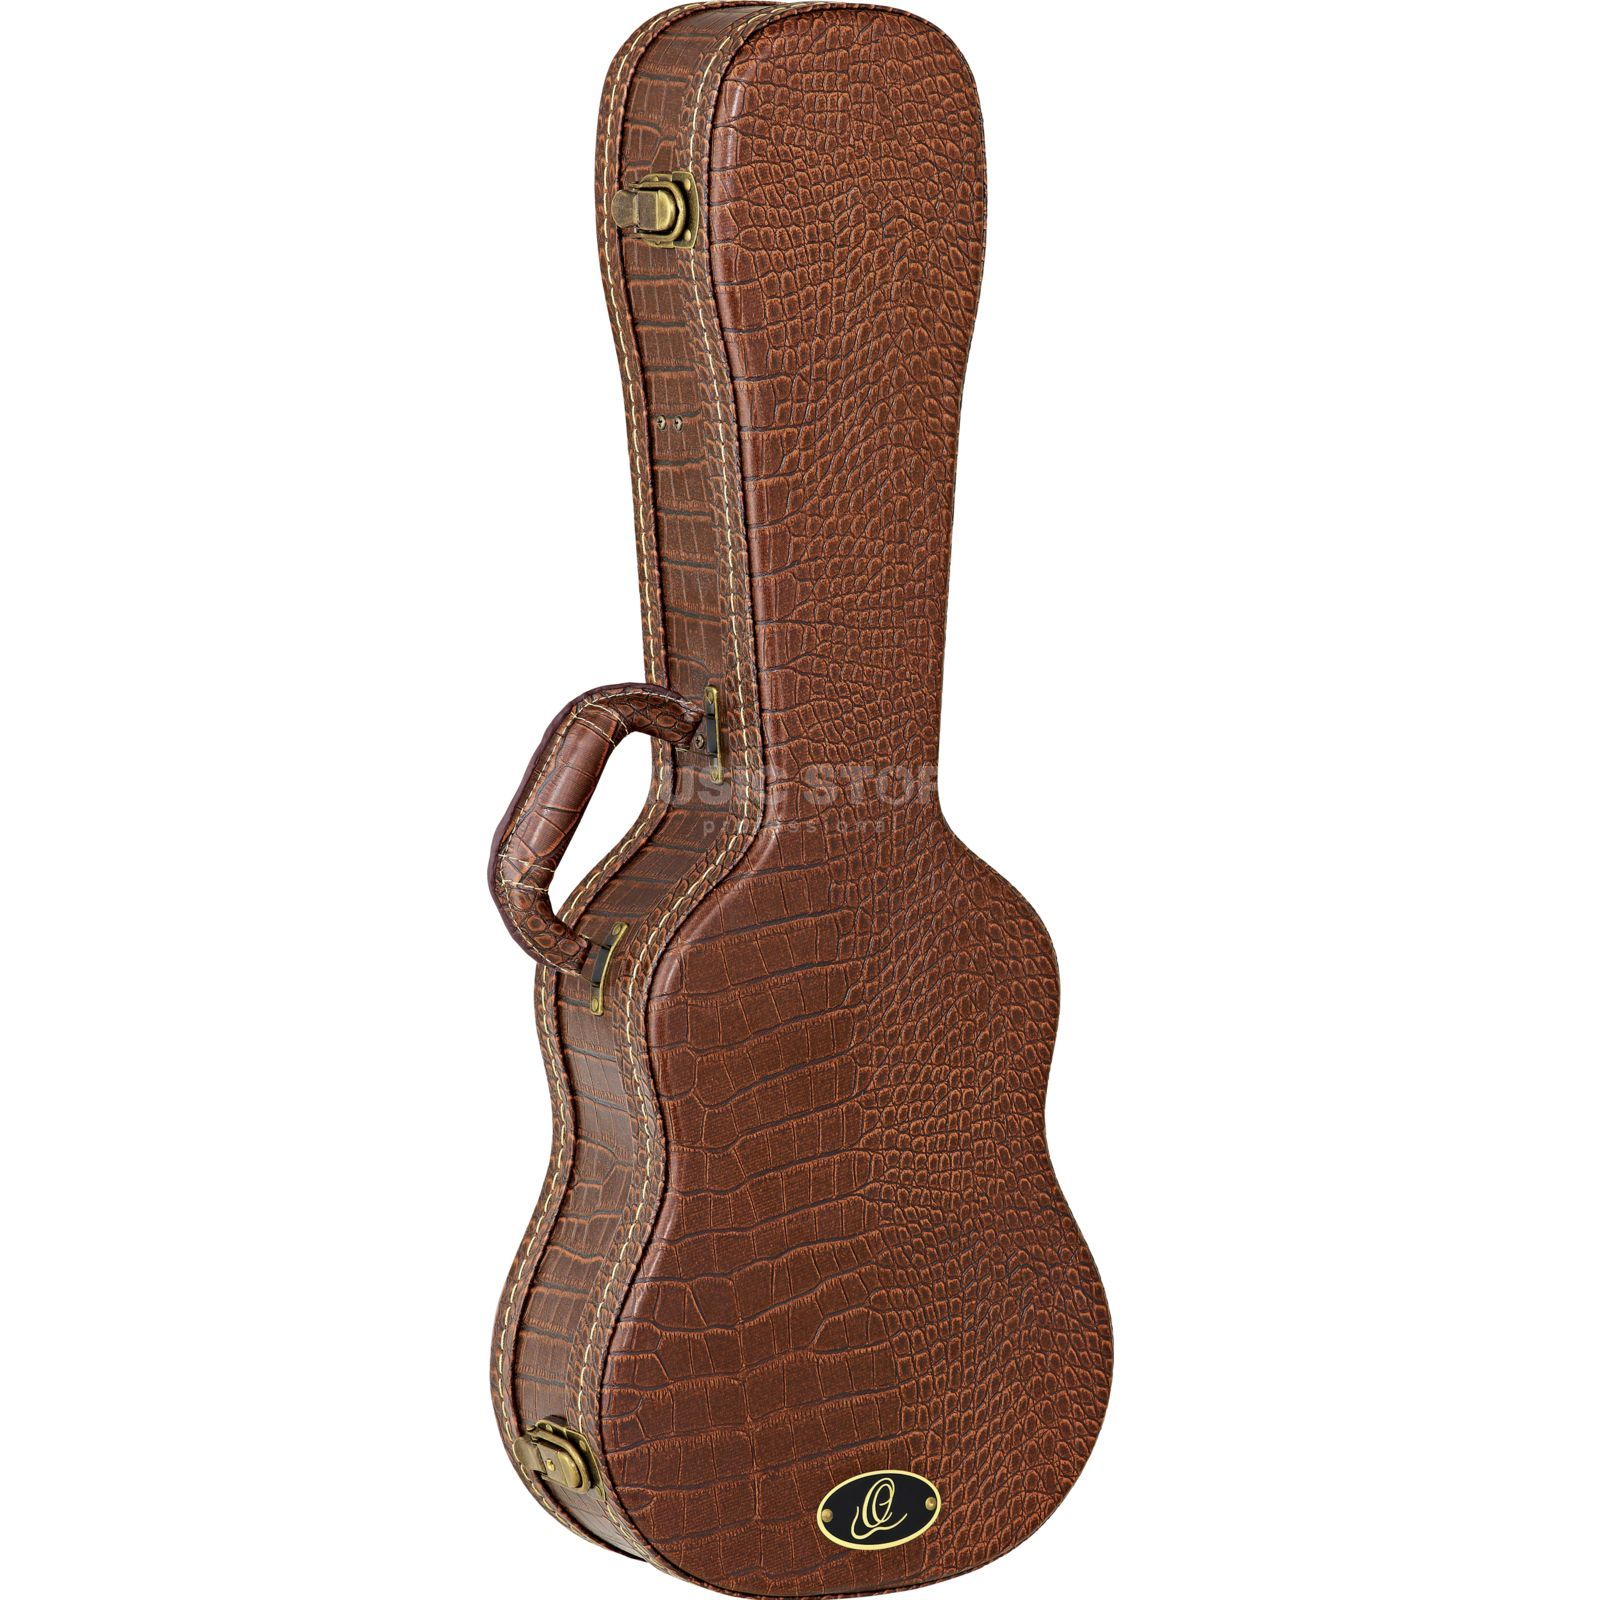 Ortega OUC-TE Ukulele Case Tenor Brown Croco Finish Produktbillede